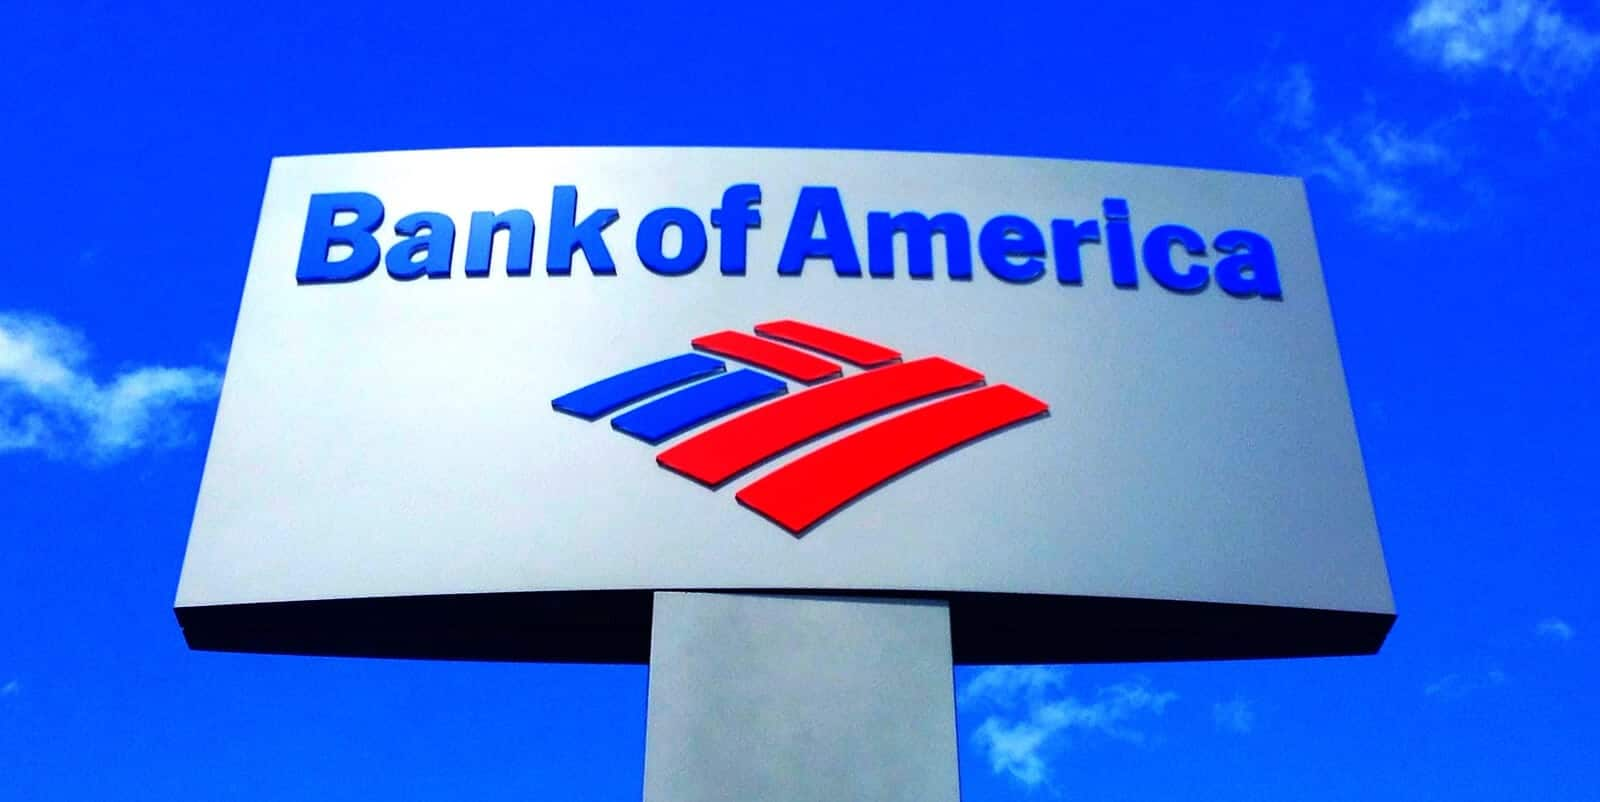 Bank of America's mistakes on Bitcoin